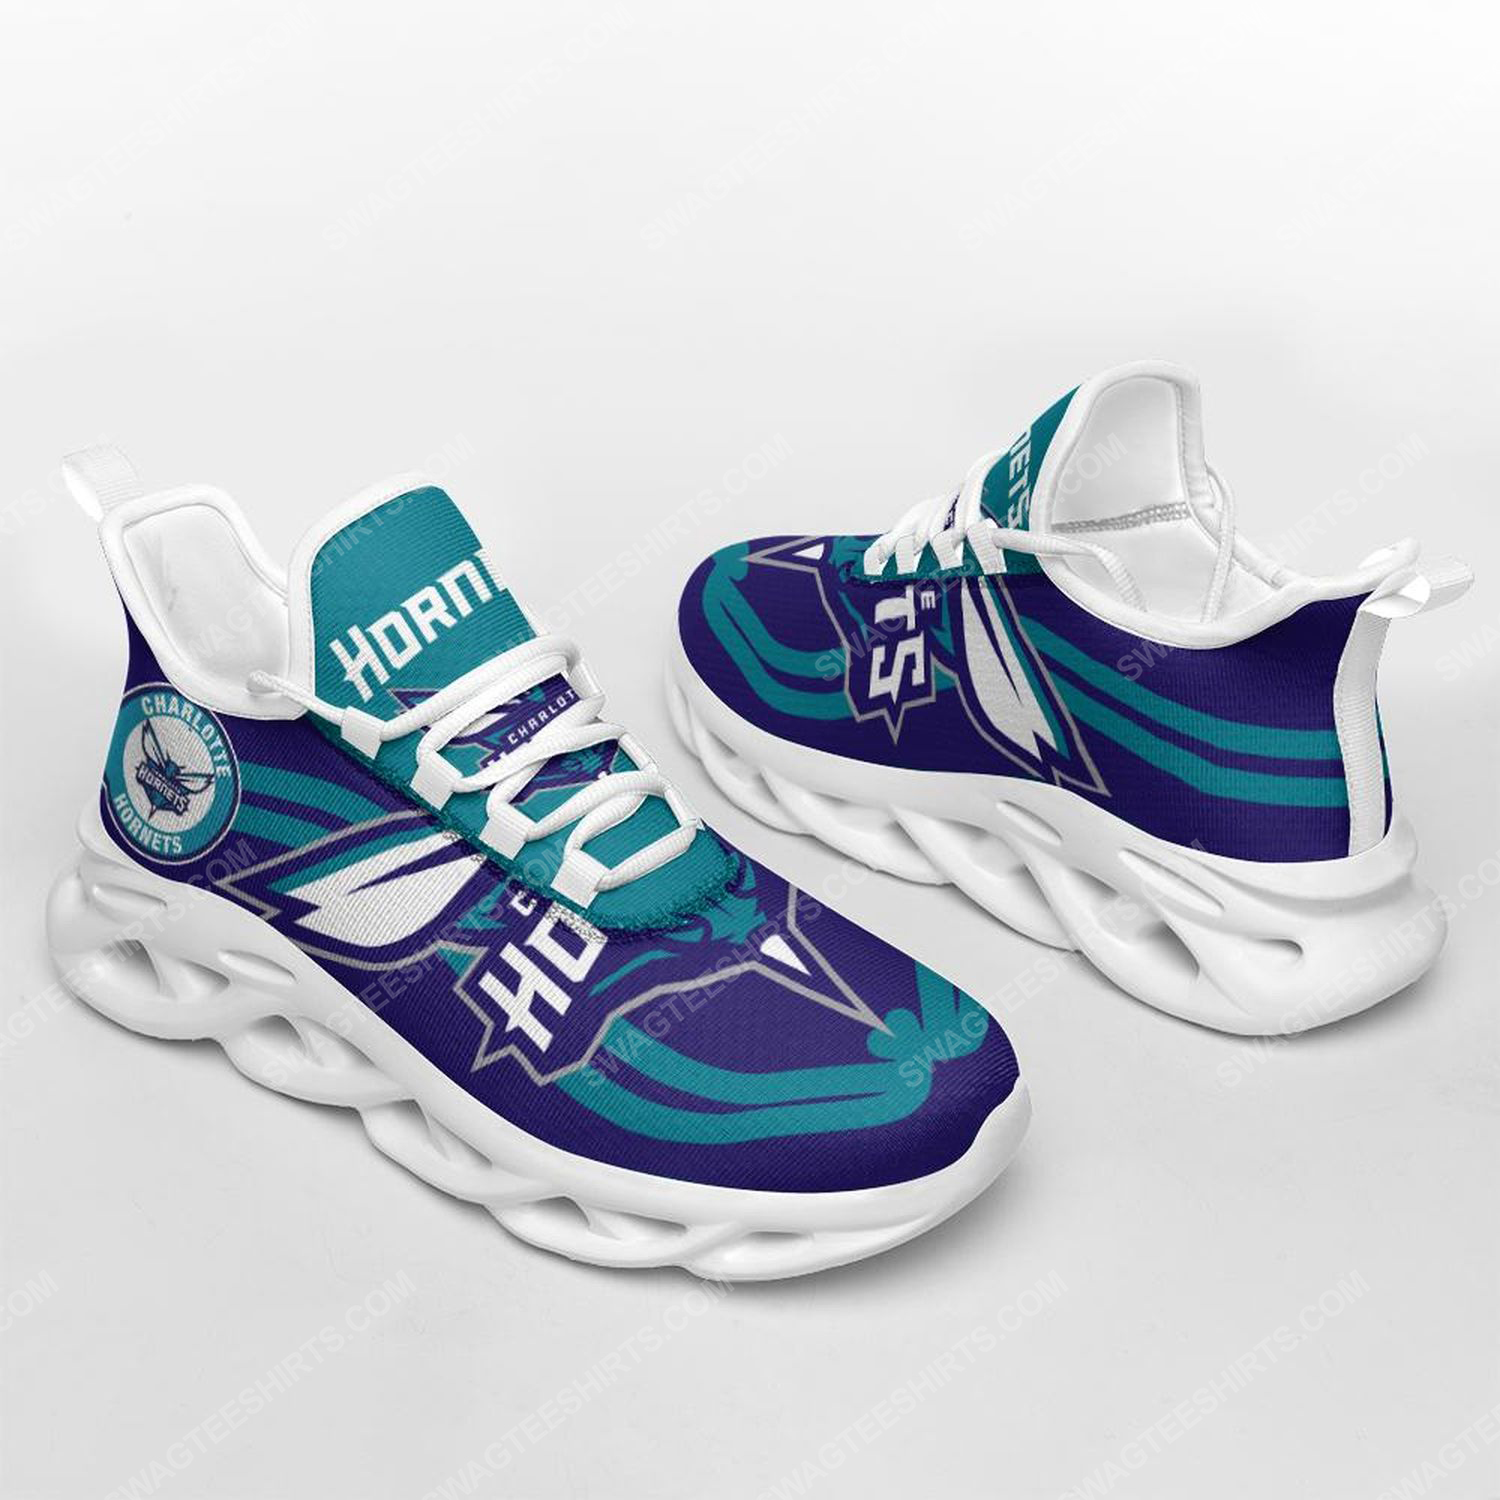 The charlotte hornets basketball team max soul shoes 1 - Copy (2)